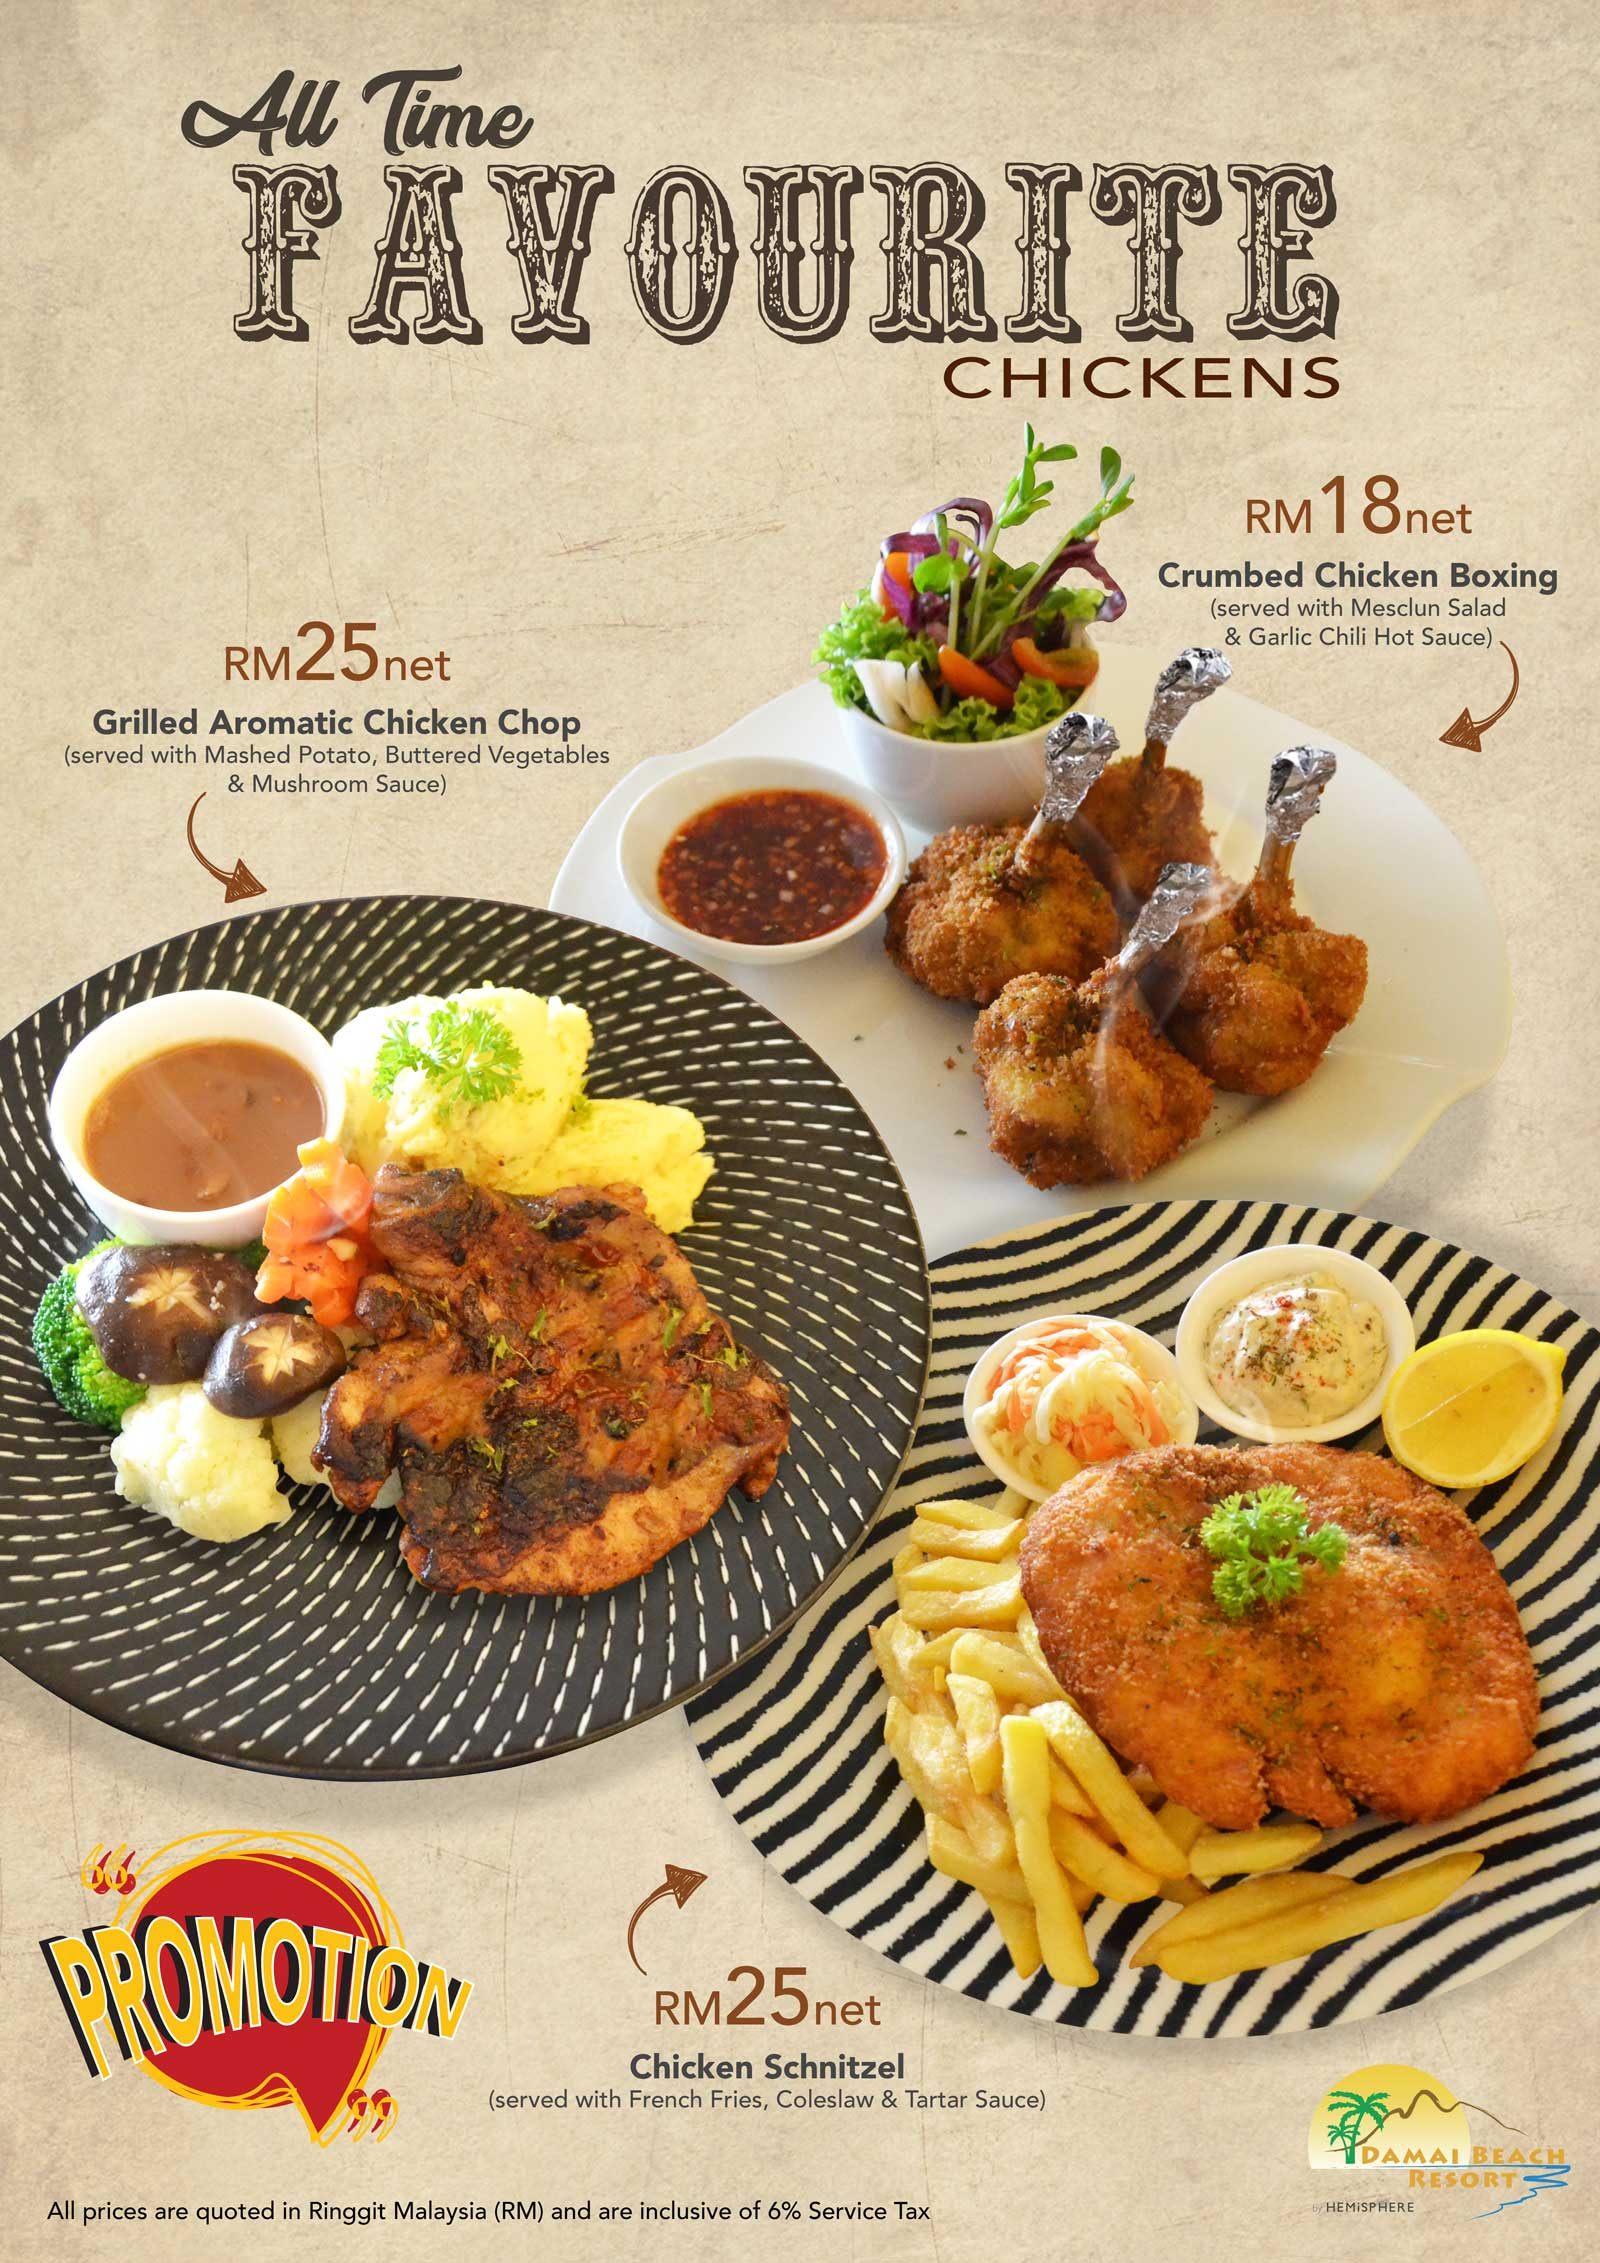 All Time Fv Chicken Promotion